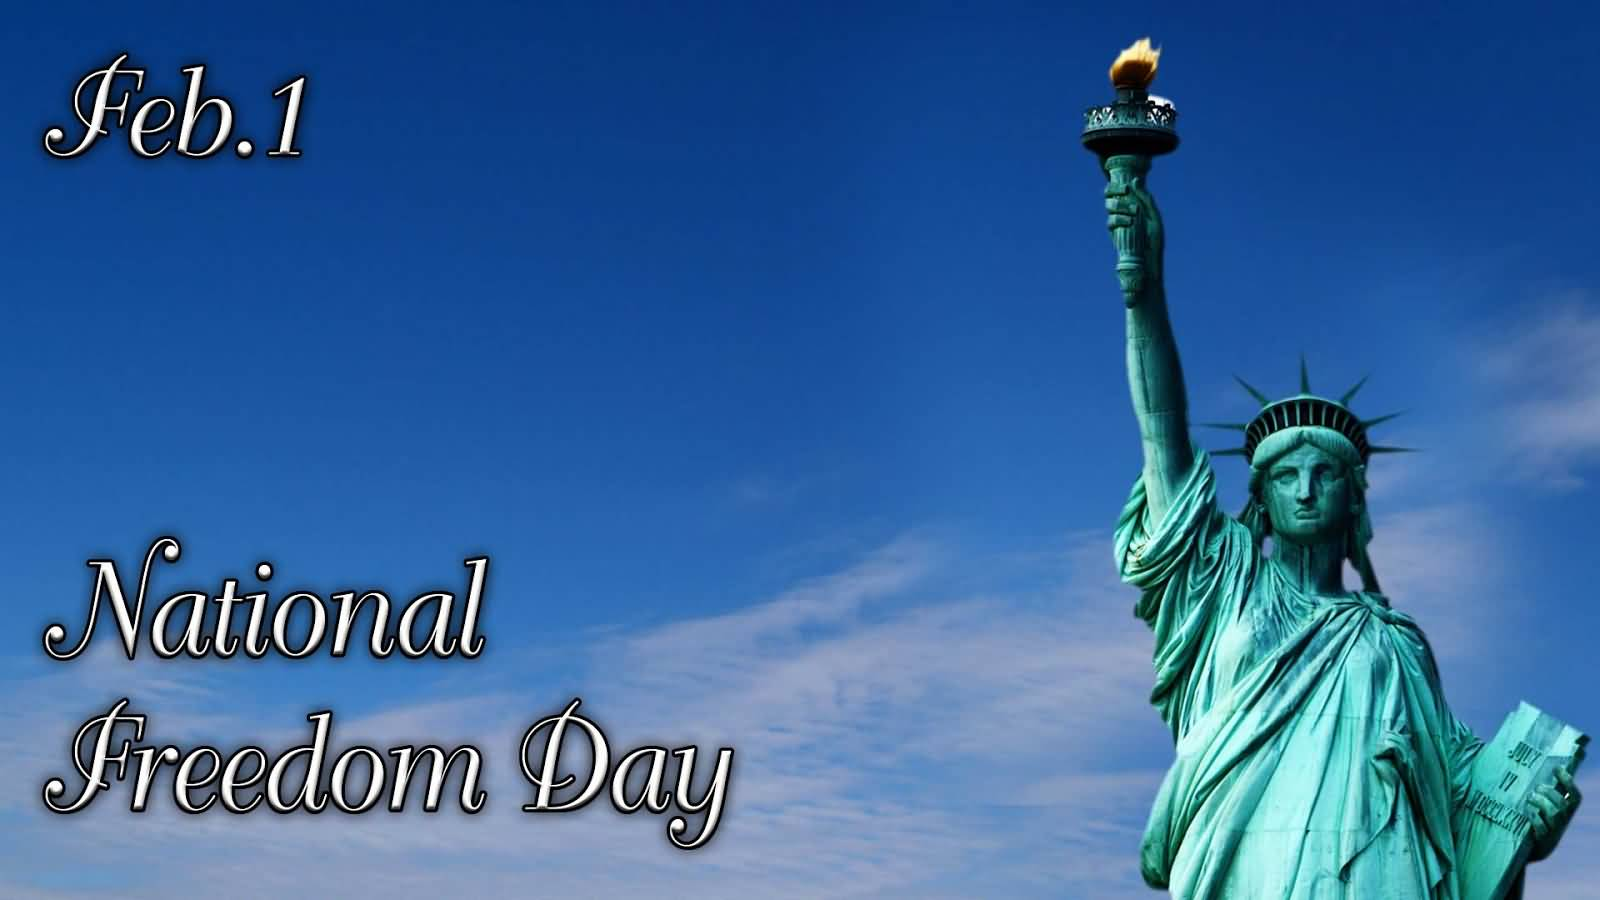 63-National Freedom Day